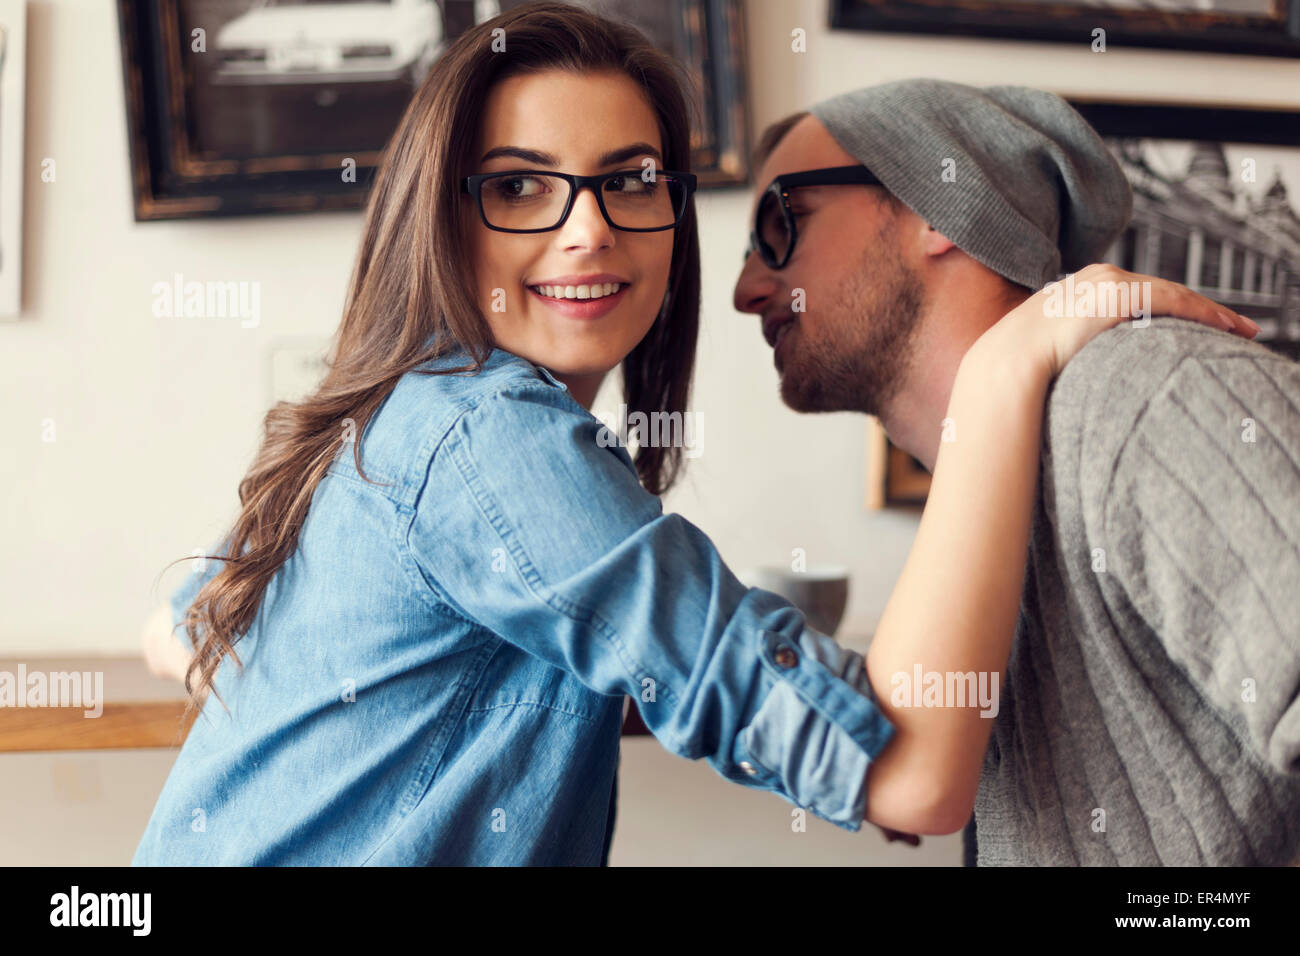 Hipster couple flirting at cafe. Krakow, Poland - Stock Image